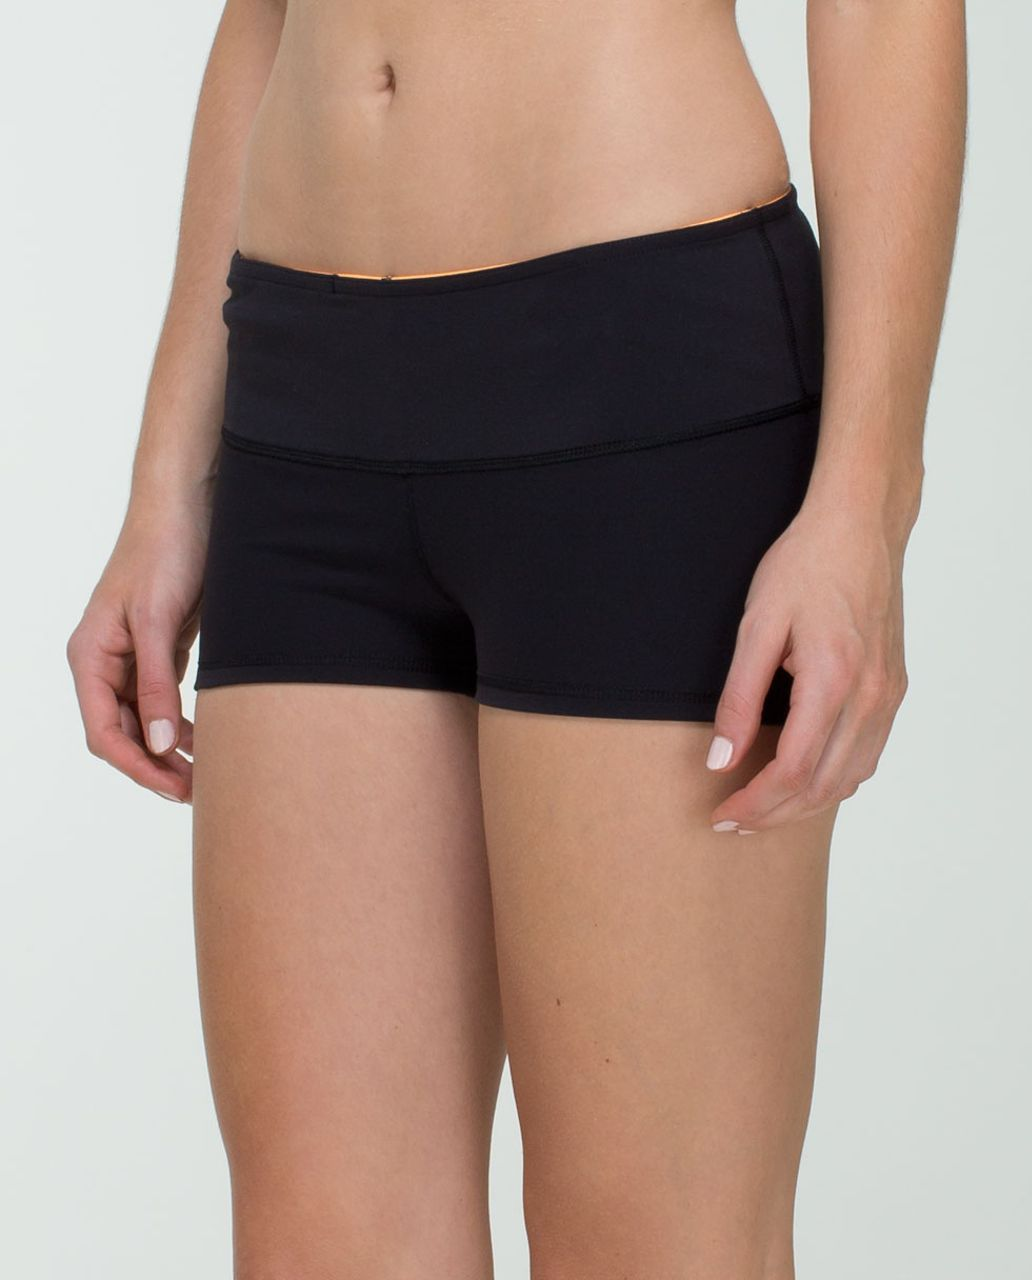 Lululemon Boogie Short *Full-On Luon - Black / Quilt Spring 14-11